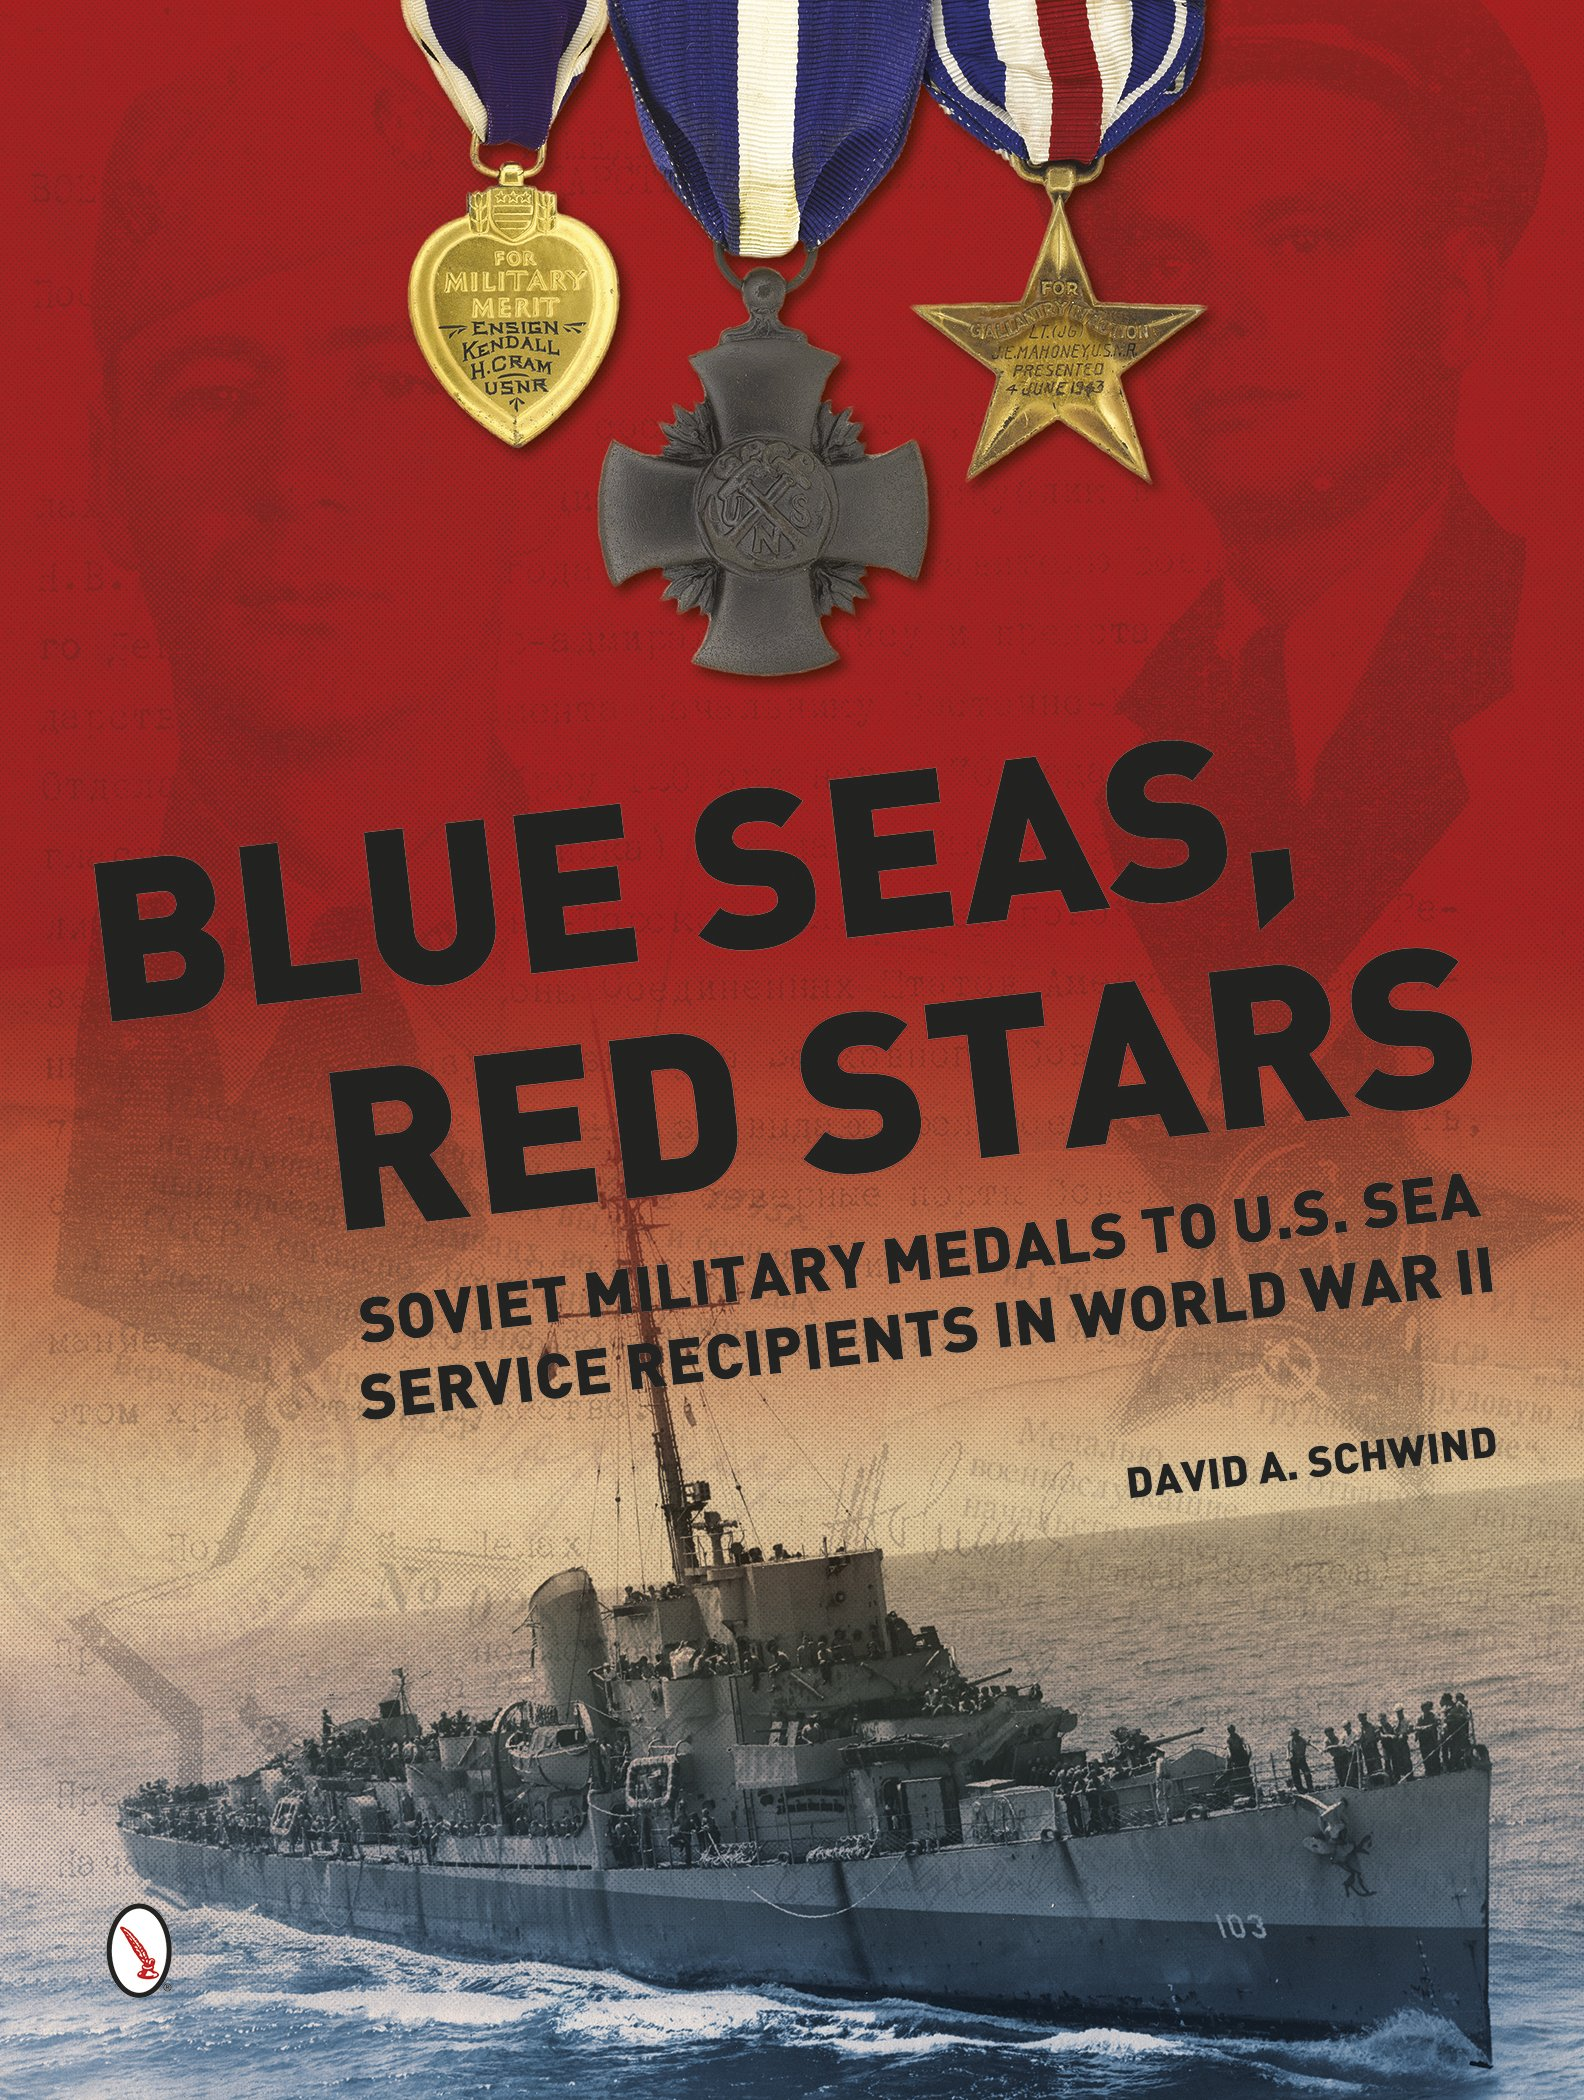 Blue Seas, Red Stars: Soviet Military Medals to U.S. Sea Service Recipients in World War II by Schiffer Military History